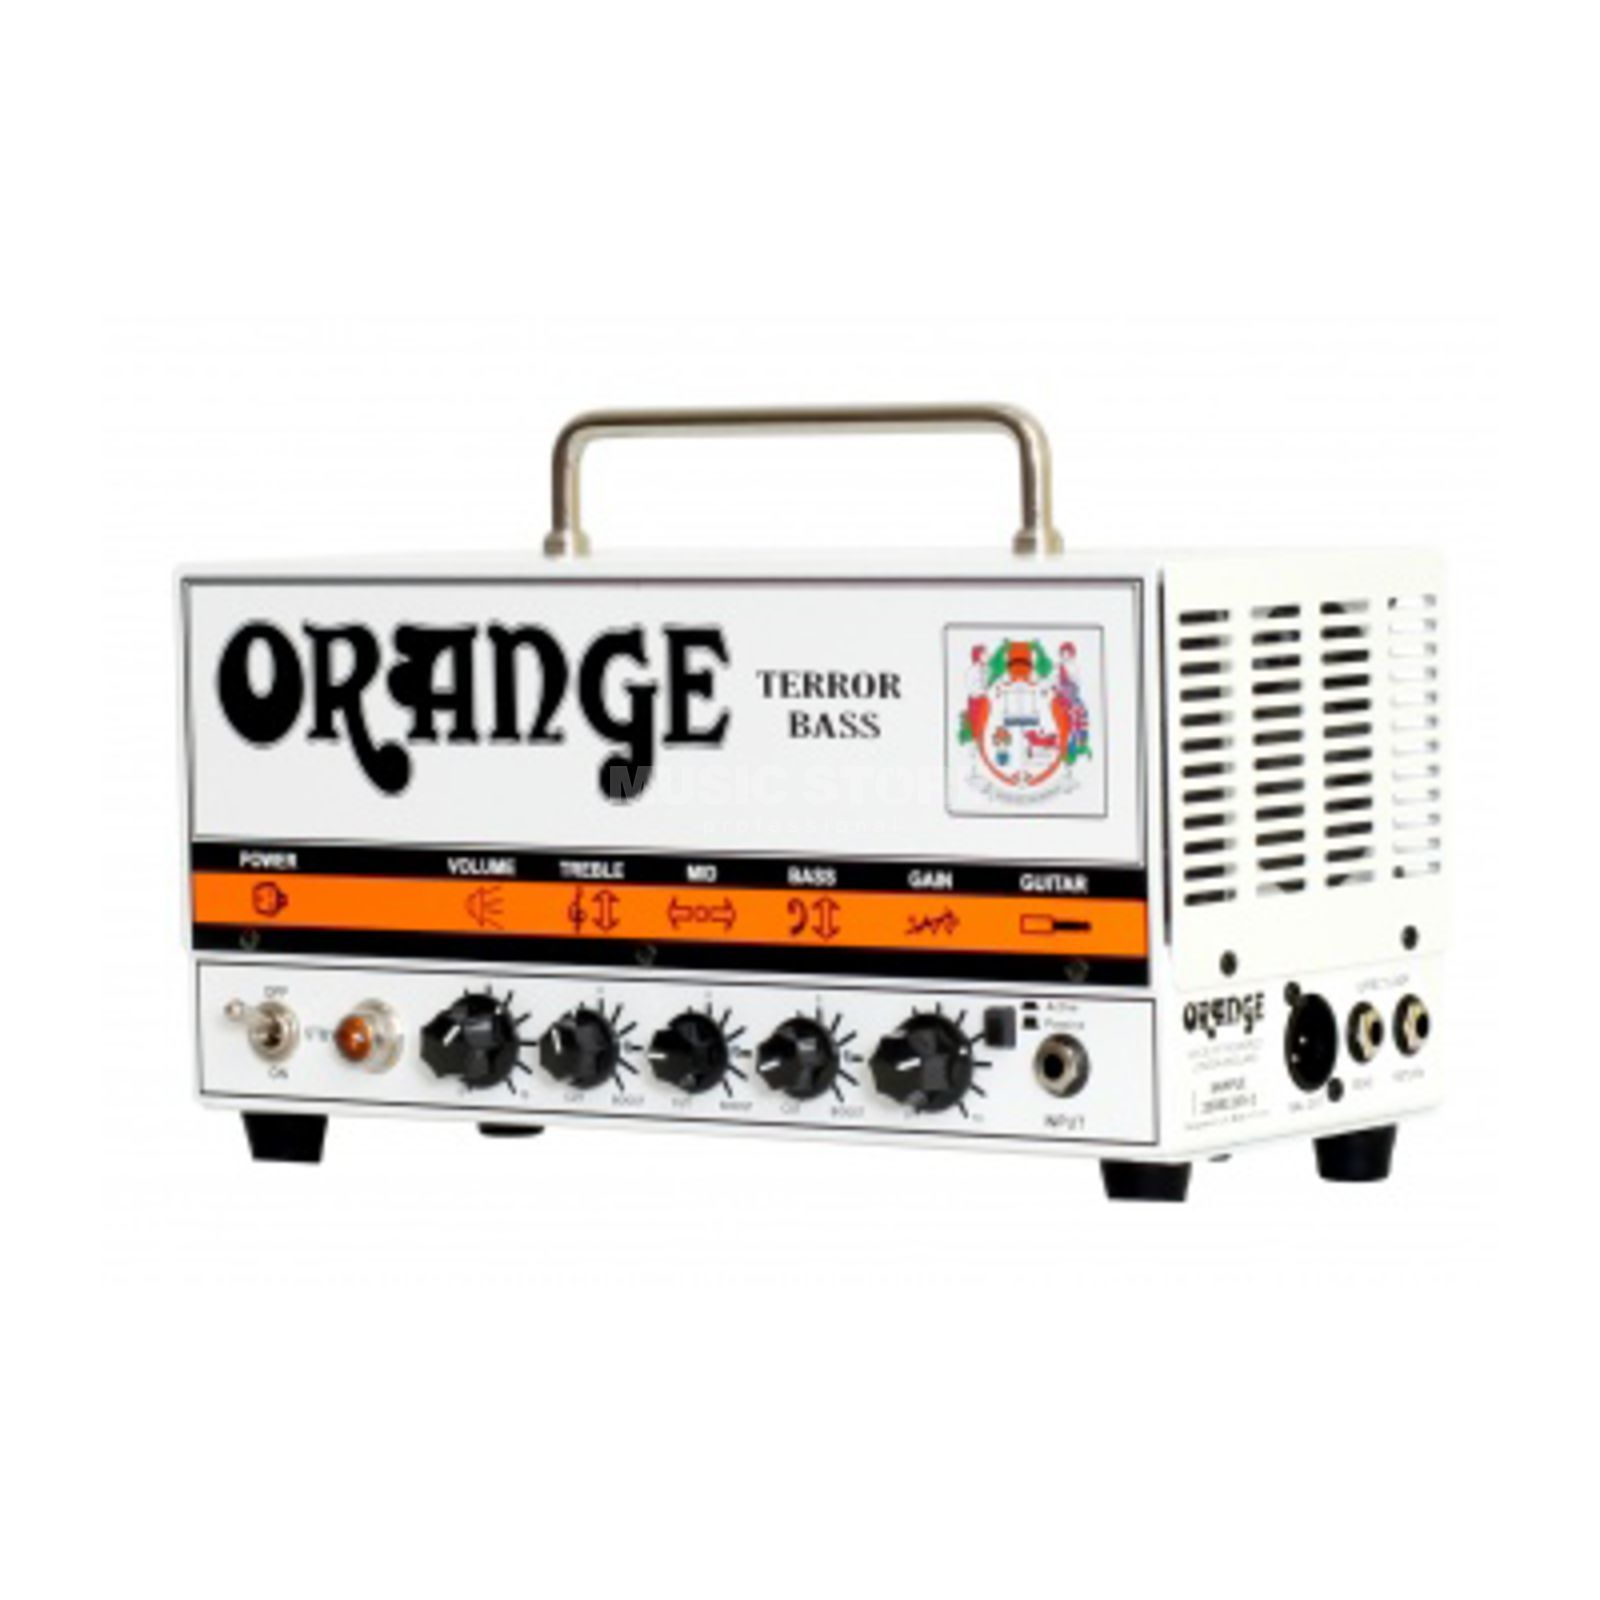 Orange Terror Bass 500 Head Produktbild